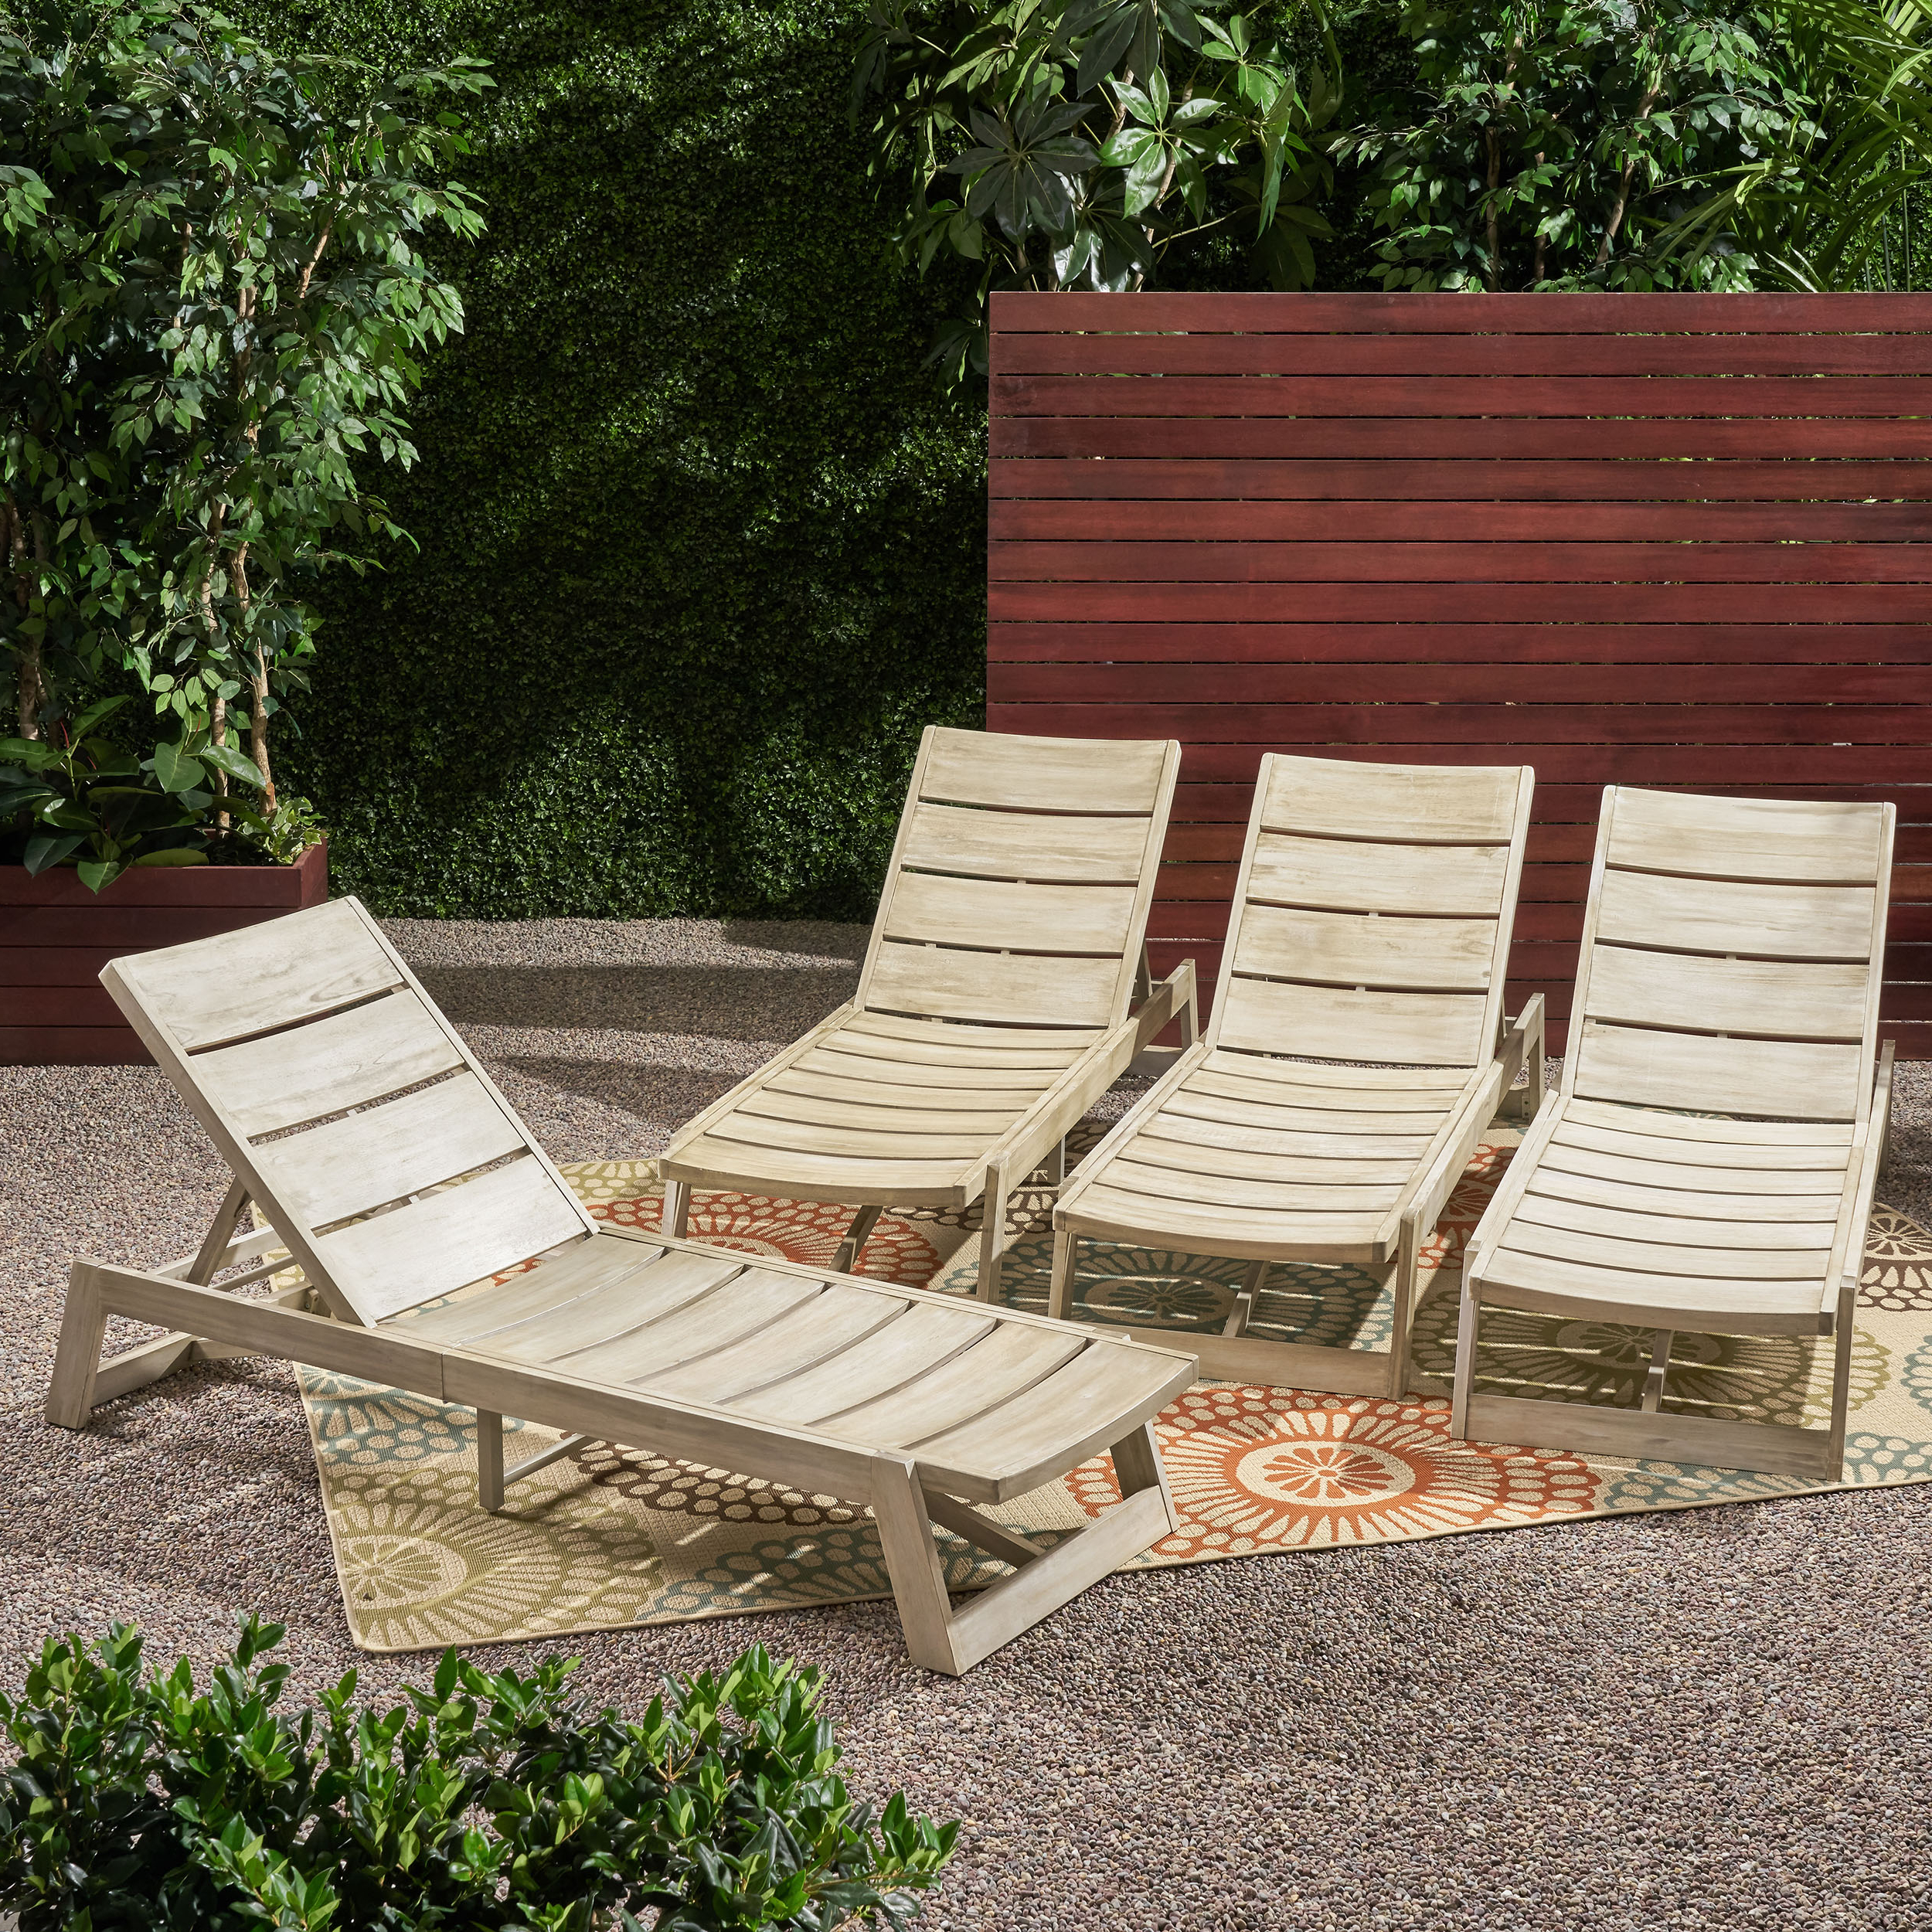 Fashionable Outdoor 3 Piece Acacia Wood Chaise Lounge Sets Within Details About Melissa Outdoor Acacia Wood Chaise Lounge (Set Of 4) (View 8 of 25)